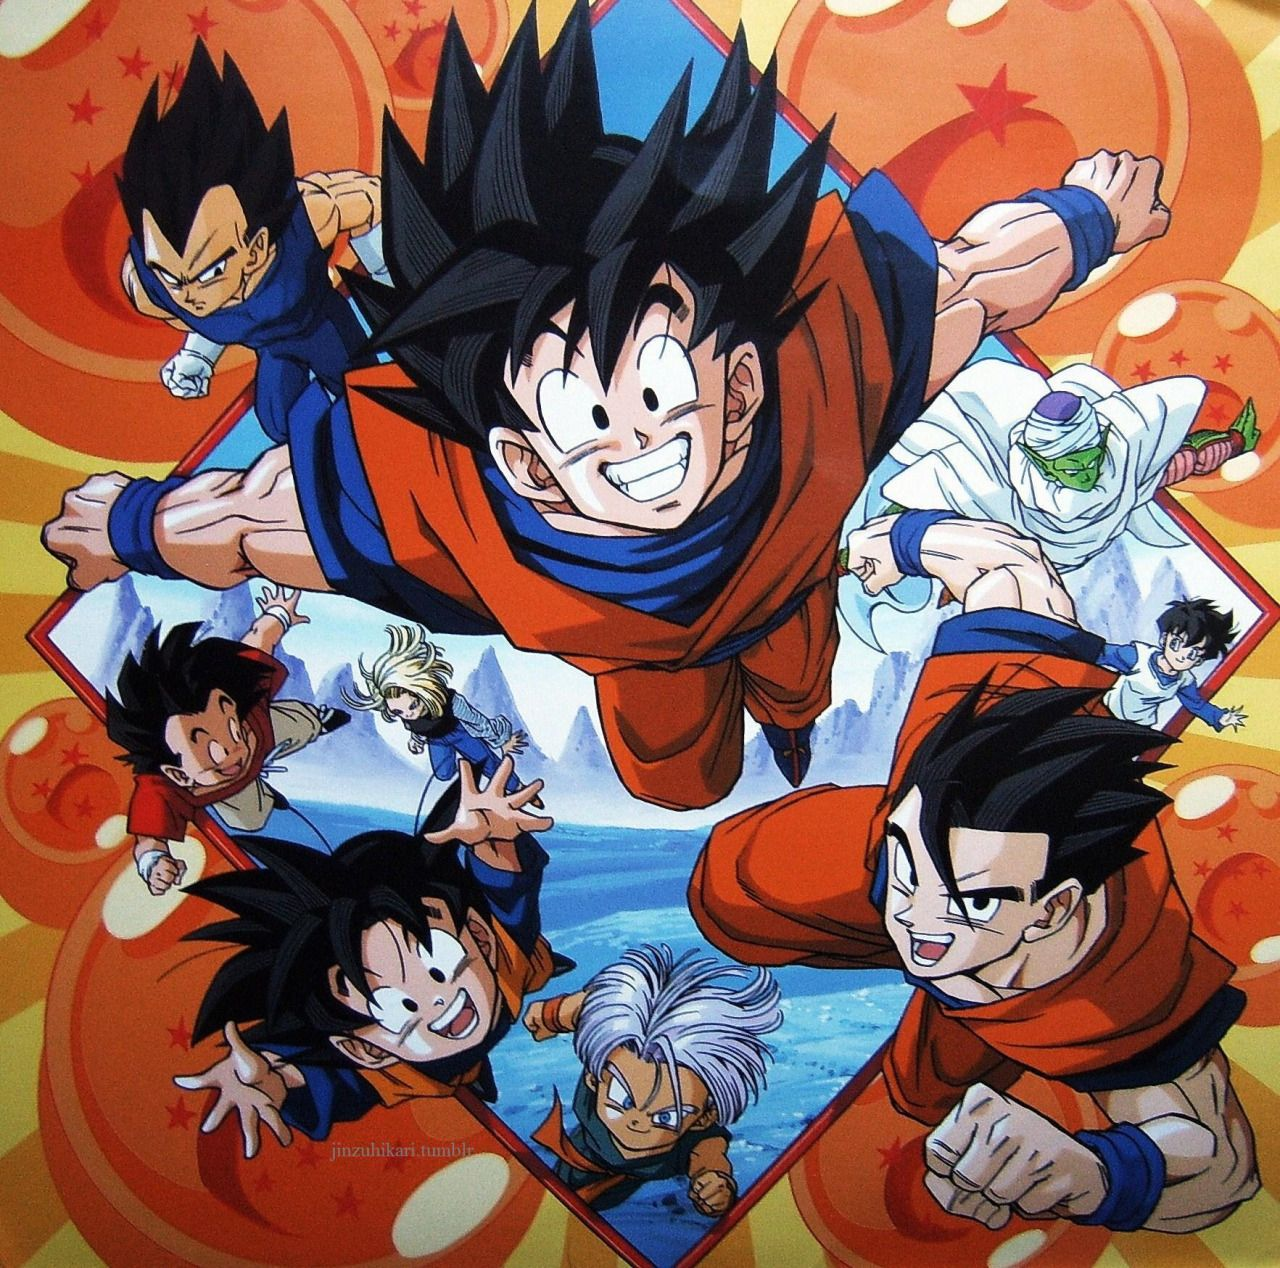 80s90sdragonballart Dragon Ball Art Dragon Ball Artwork Anime Dragon Ball